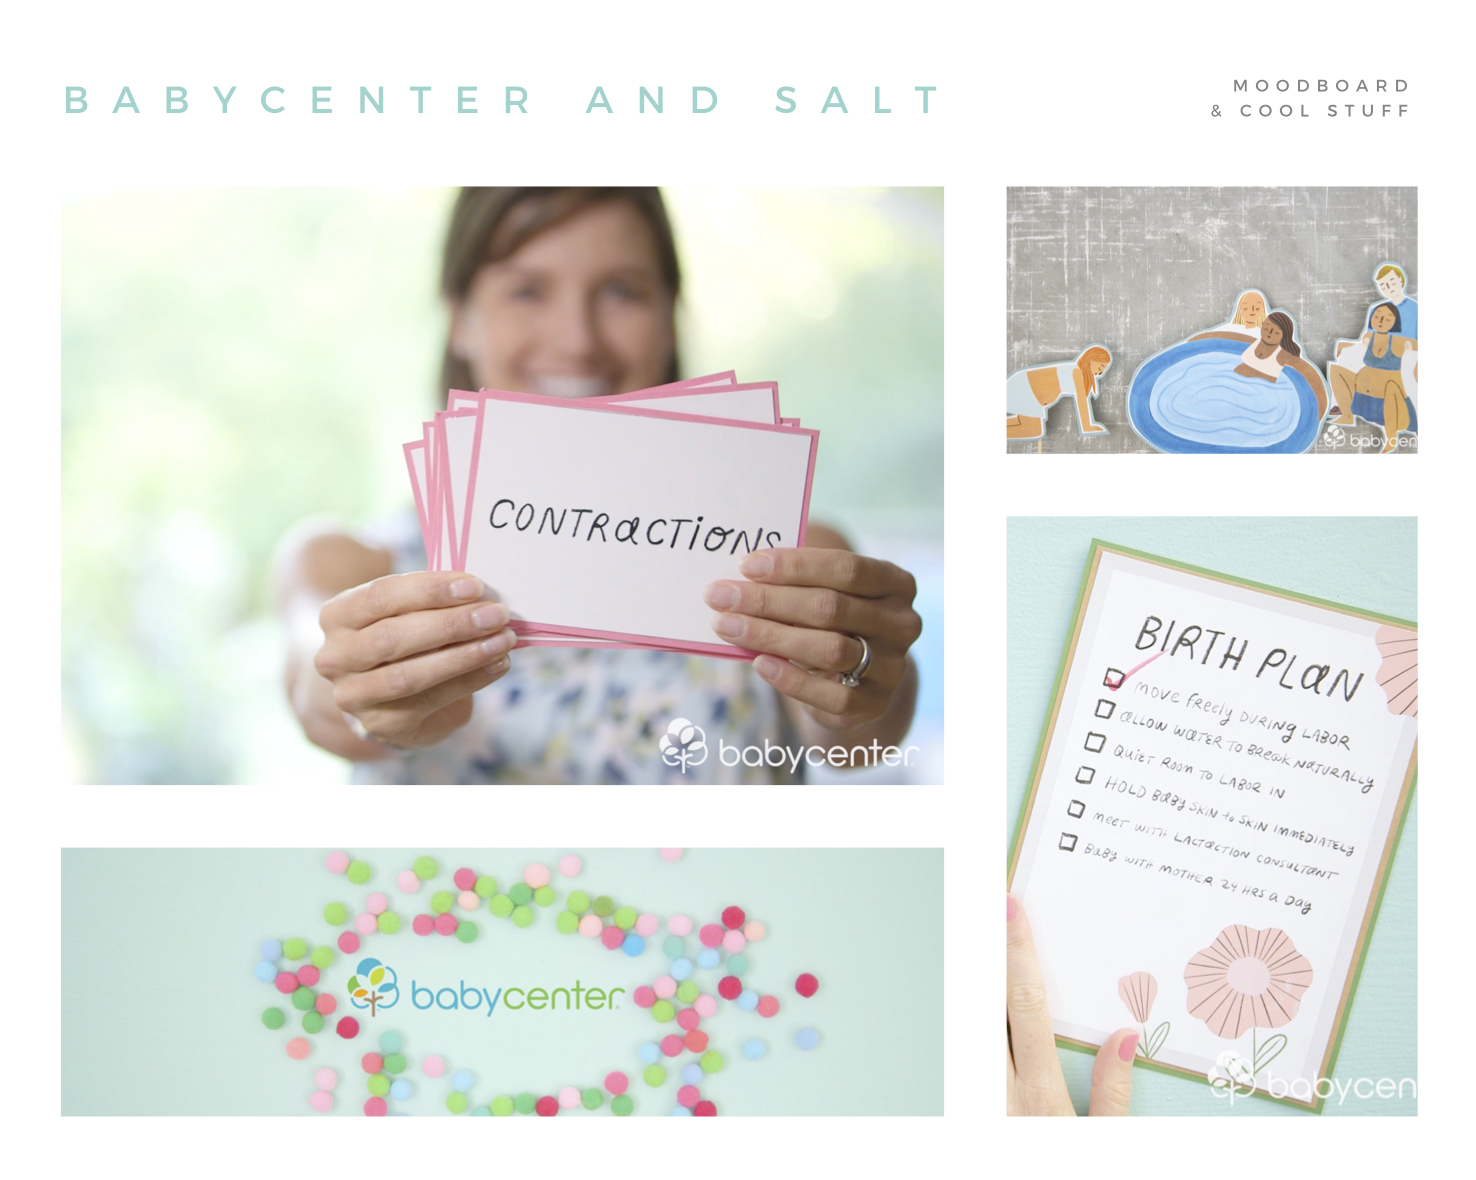 BabyCenter and SALT